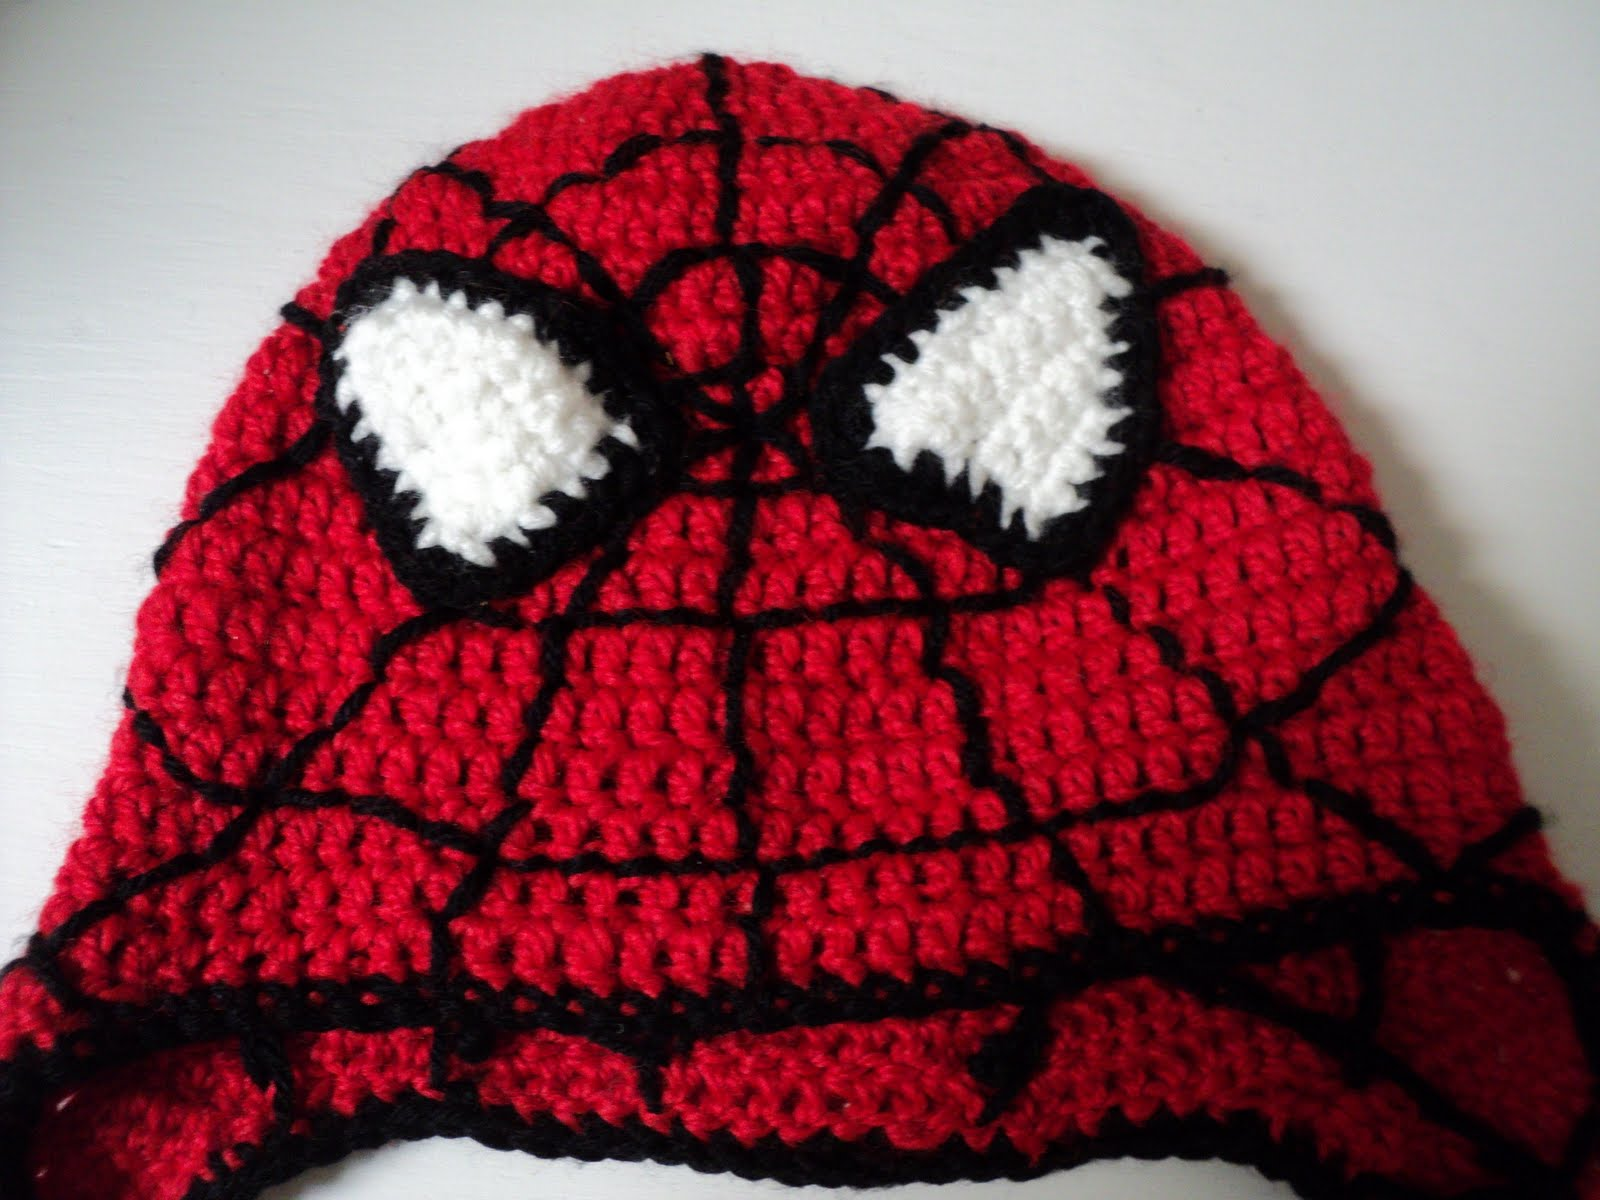 crochet spiderman doll - Crochetville